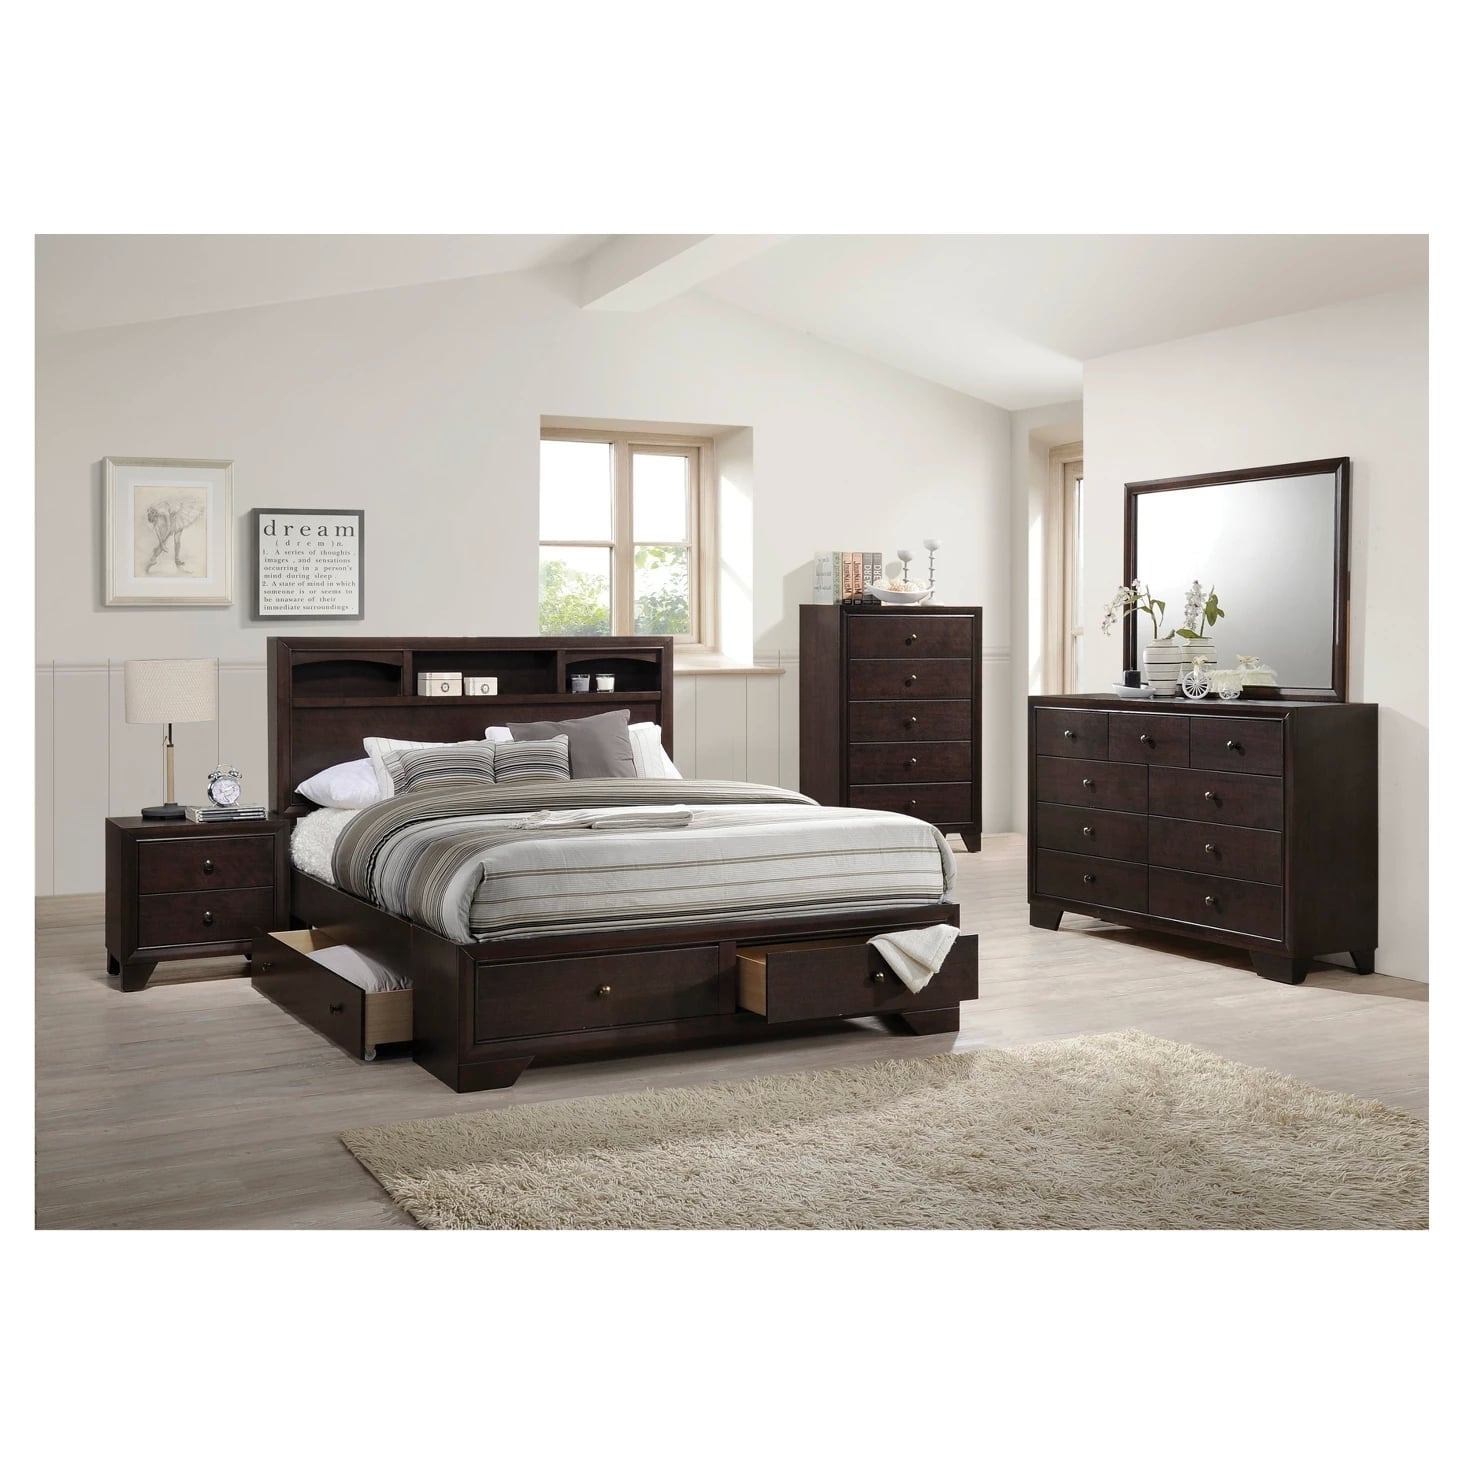 Madison II Queen Bed With Storage | Small Bedroom Cramping ...